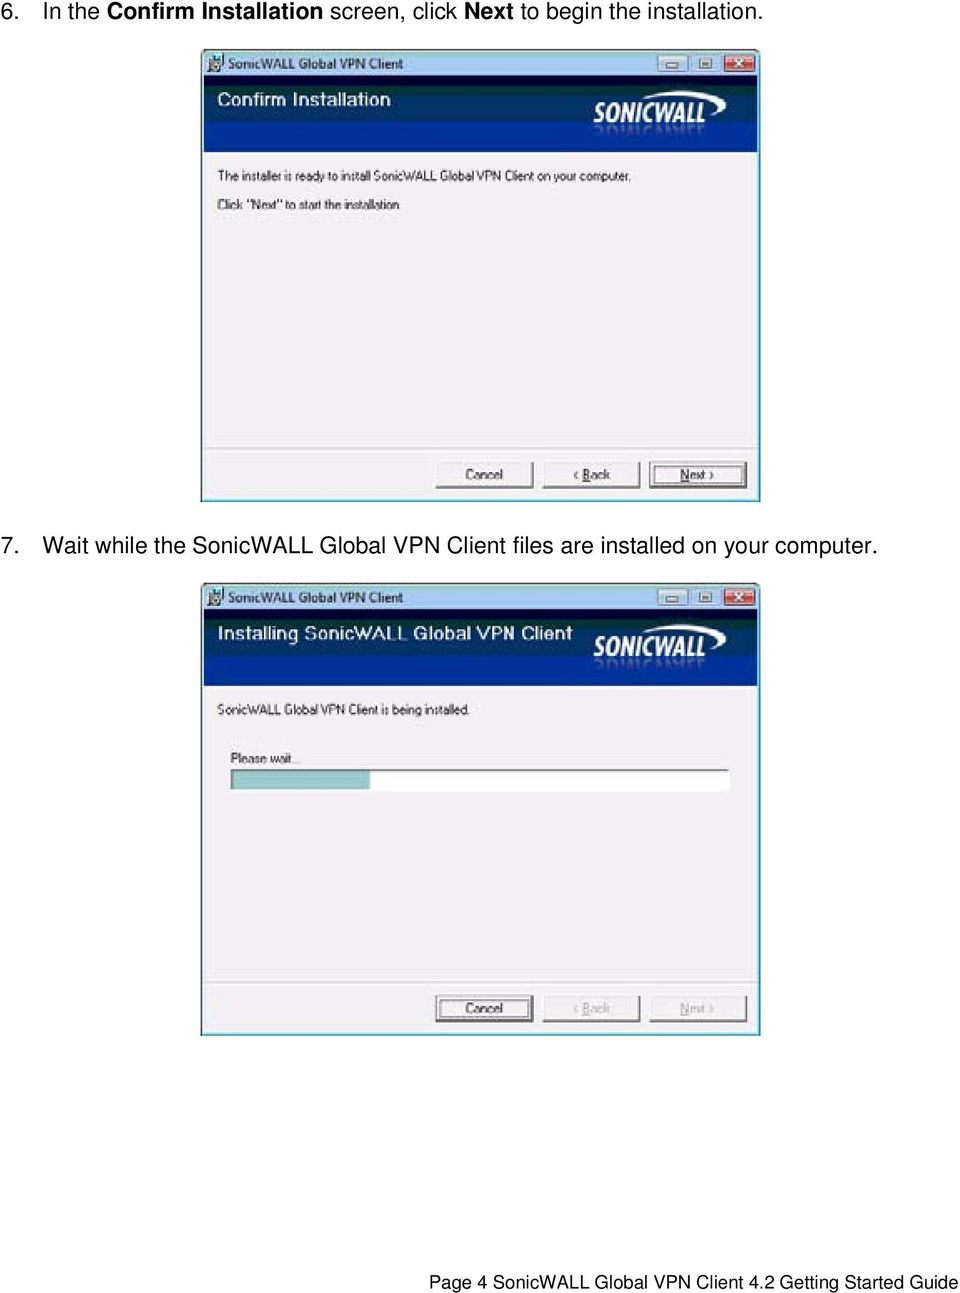 Wait while the SonicWALL Global VPN Client files are